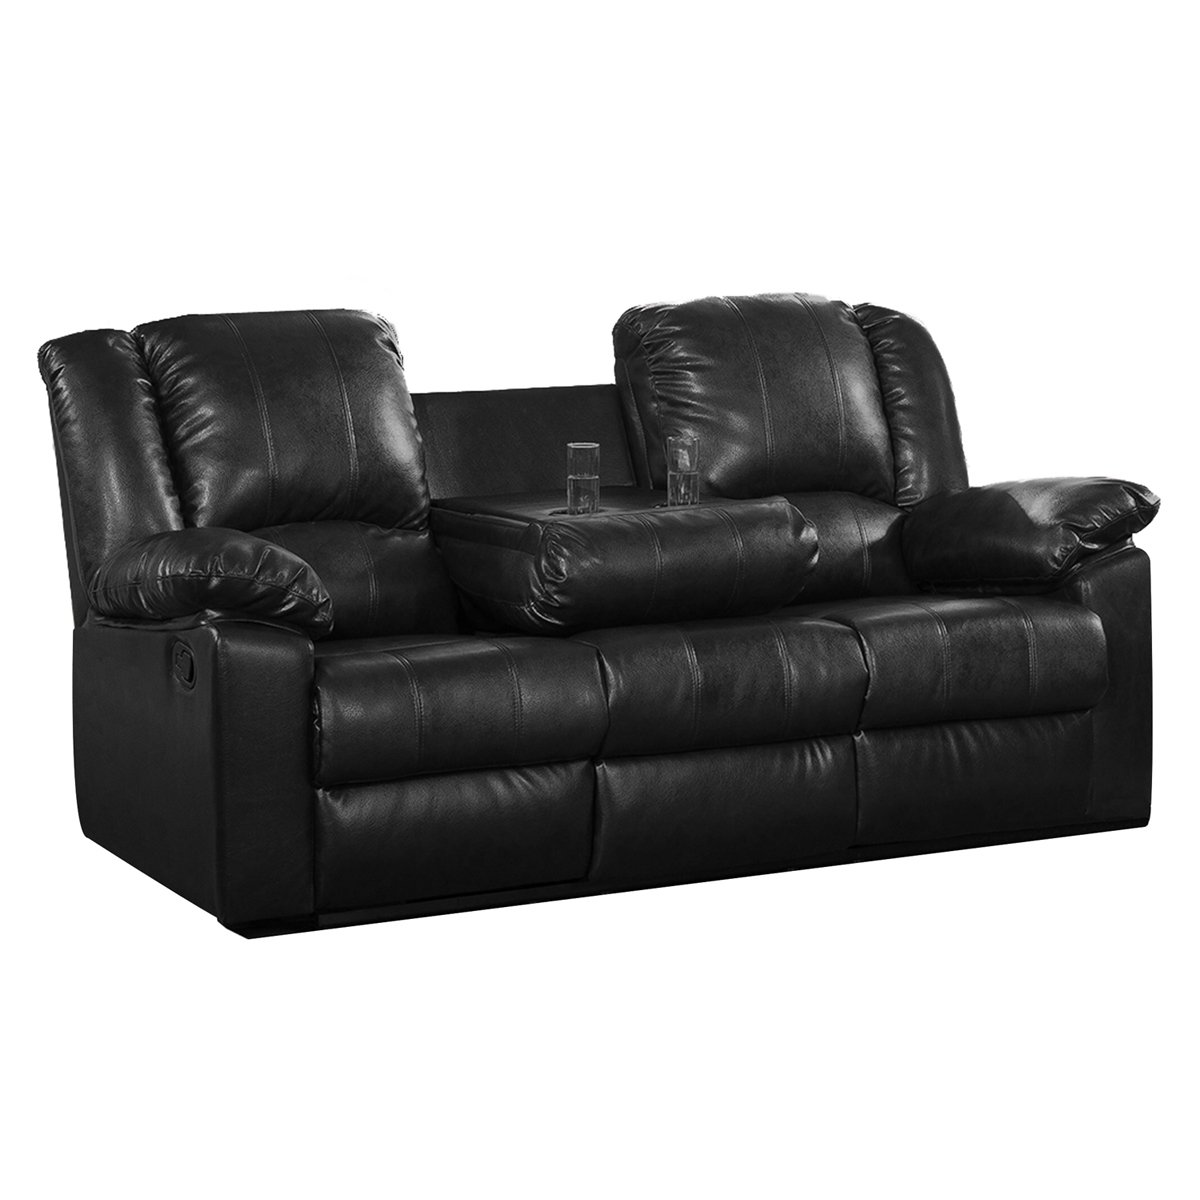 Amazon.com Milton Greens Stars Burgas Reclining Sofa with Drop-Down Cup Holder 81 by 38 by 40-Inch Black Kitchen u0026 Dining  sc 1 st  Amazon.com : black reclining sofa set - islam-shia.org